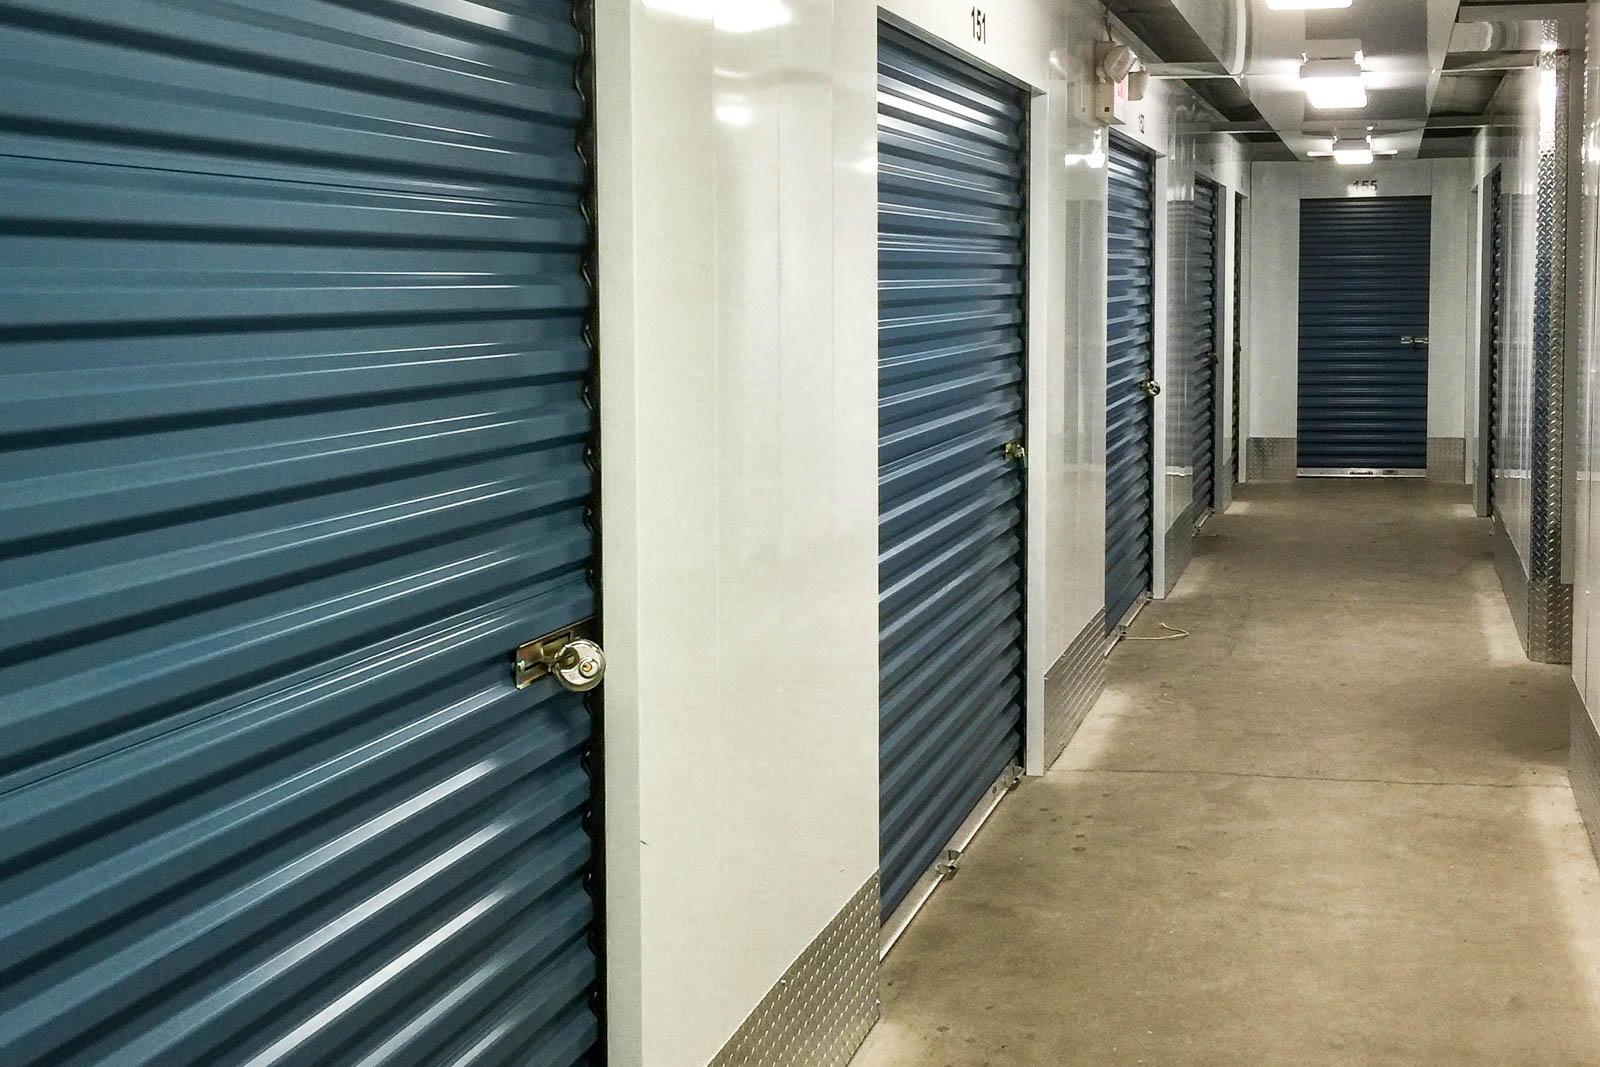 Self Storage Facility at 1201 East Cinnabar Avenue - image 1